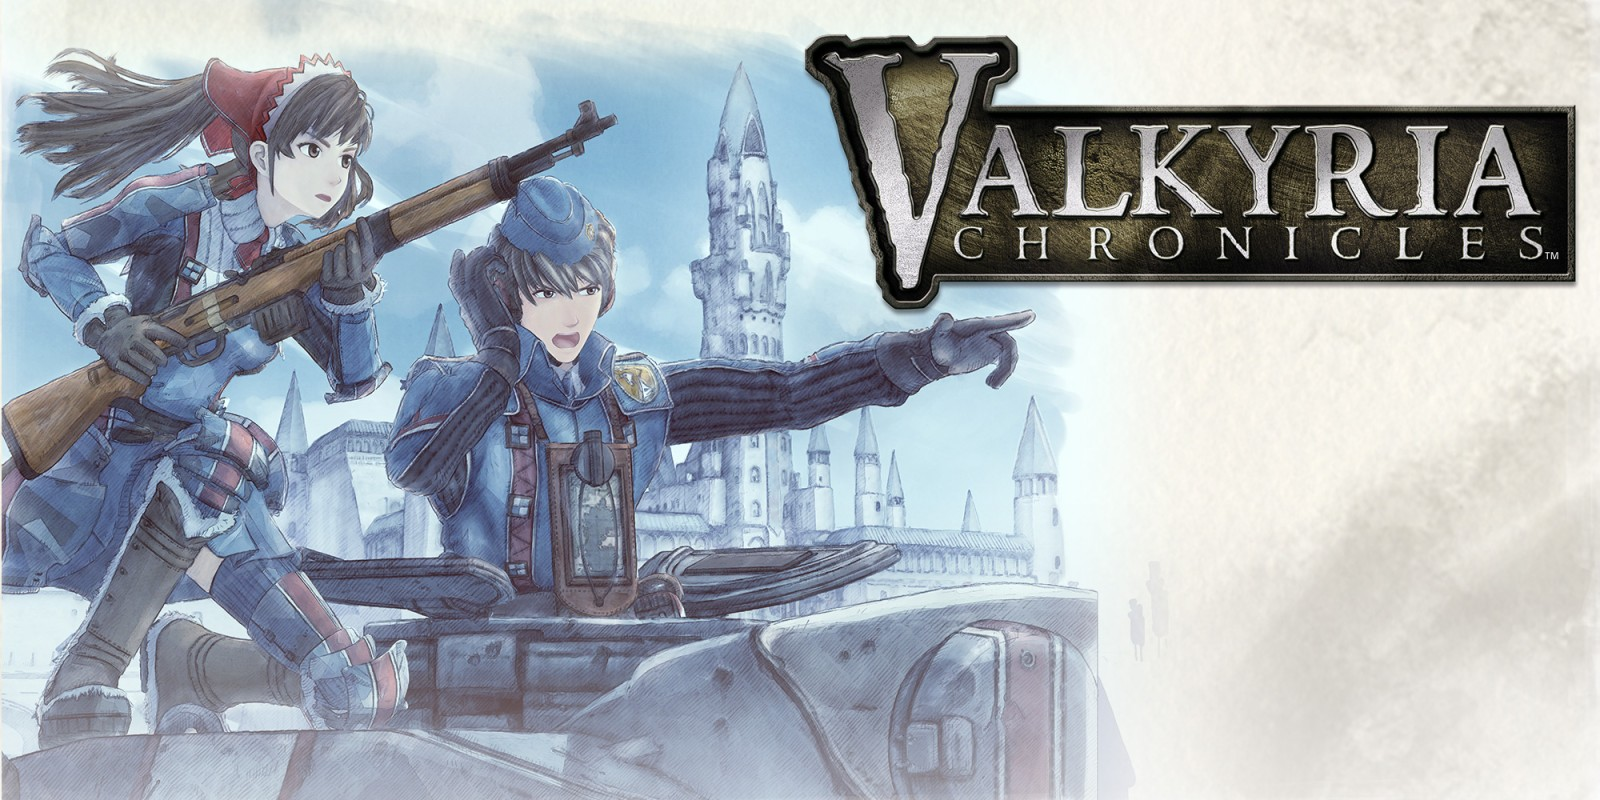 Today's Best Game Deals: Valkyria Chronicles $12, LEGO Marvel Heroes 2 $10, more